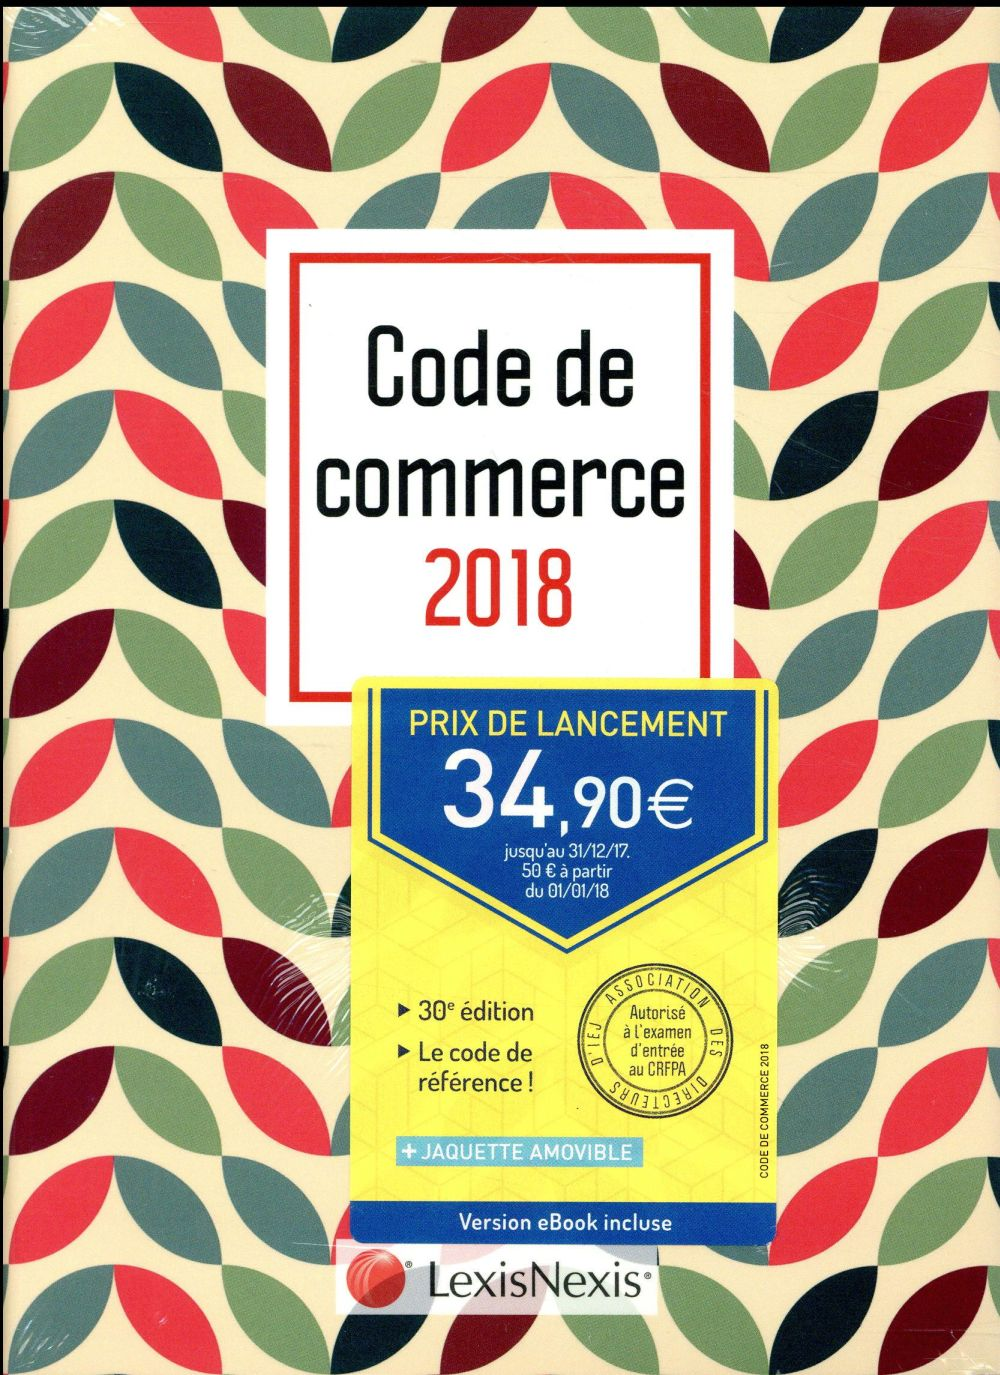 Code de commerce 2018 ; motif vintage